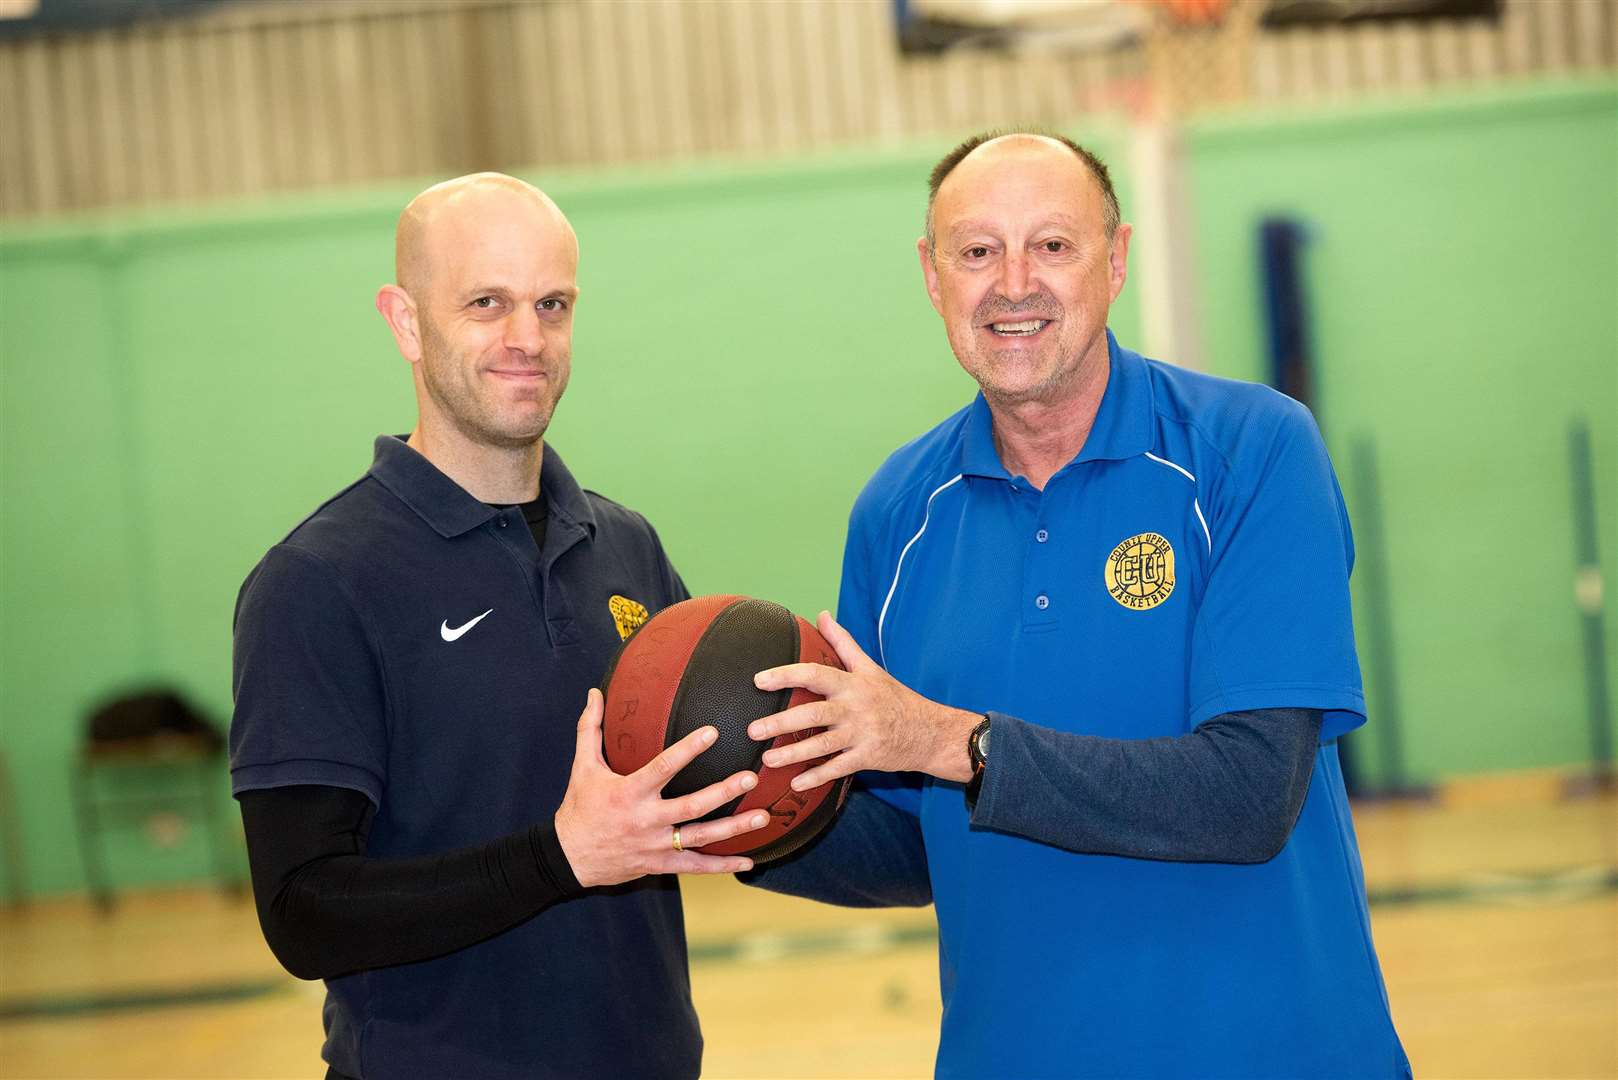 Bury St Edmunds.County Upper Basketball Academy hire ex-professional head coach: Coach Navarro: ANGEL NAVARRO HERNÁNDEZ.Has coached in the Champions League equivalent of basketball in Spain..Coach Darren Johnson and Angel Navarro Picture Mark Westley. (4836208)